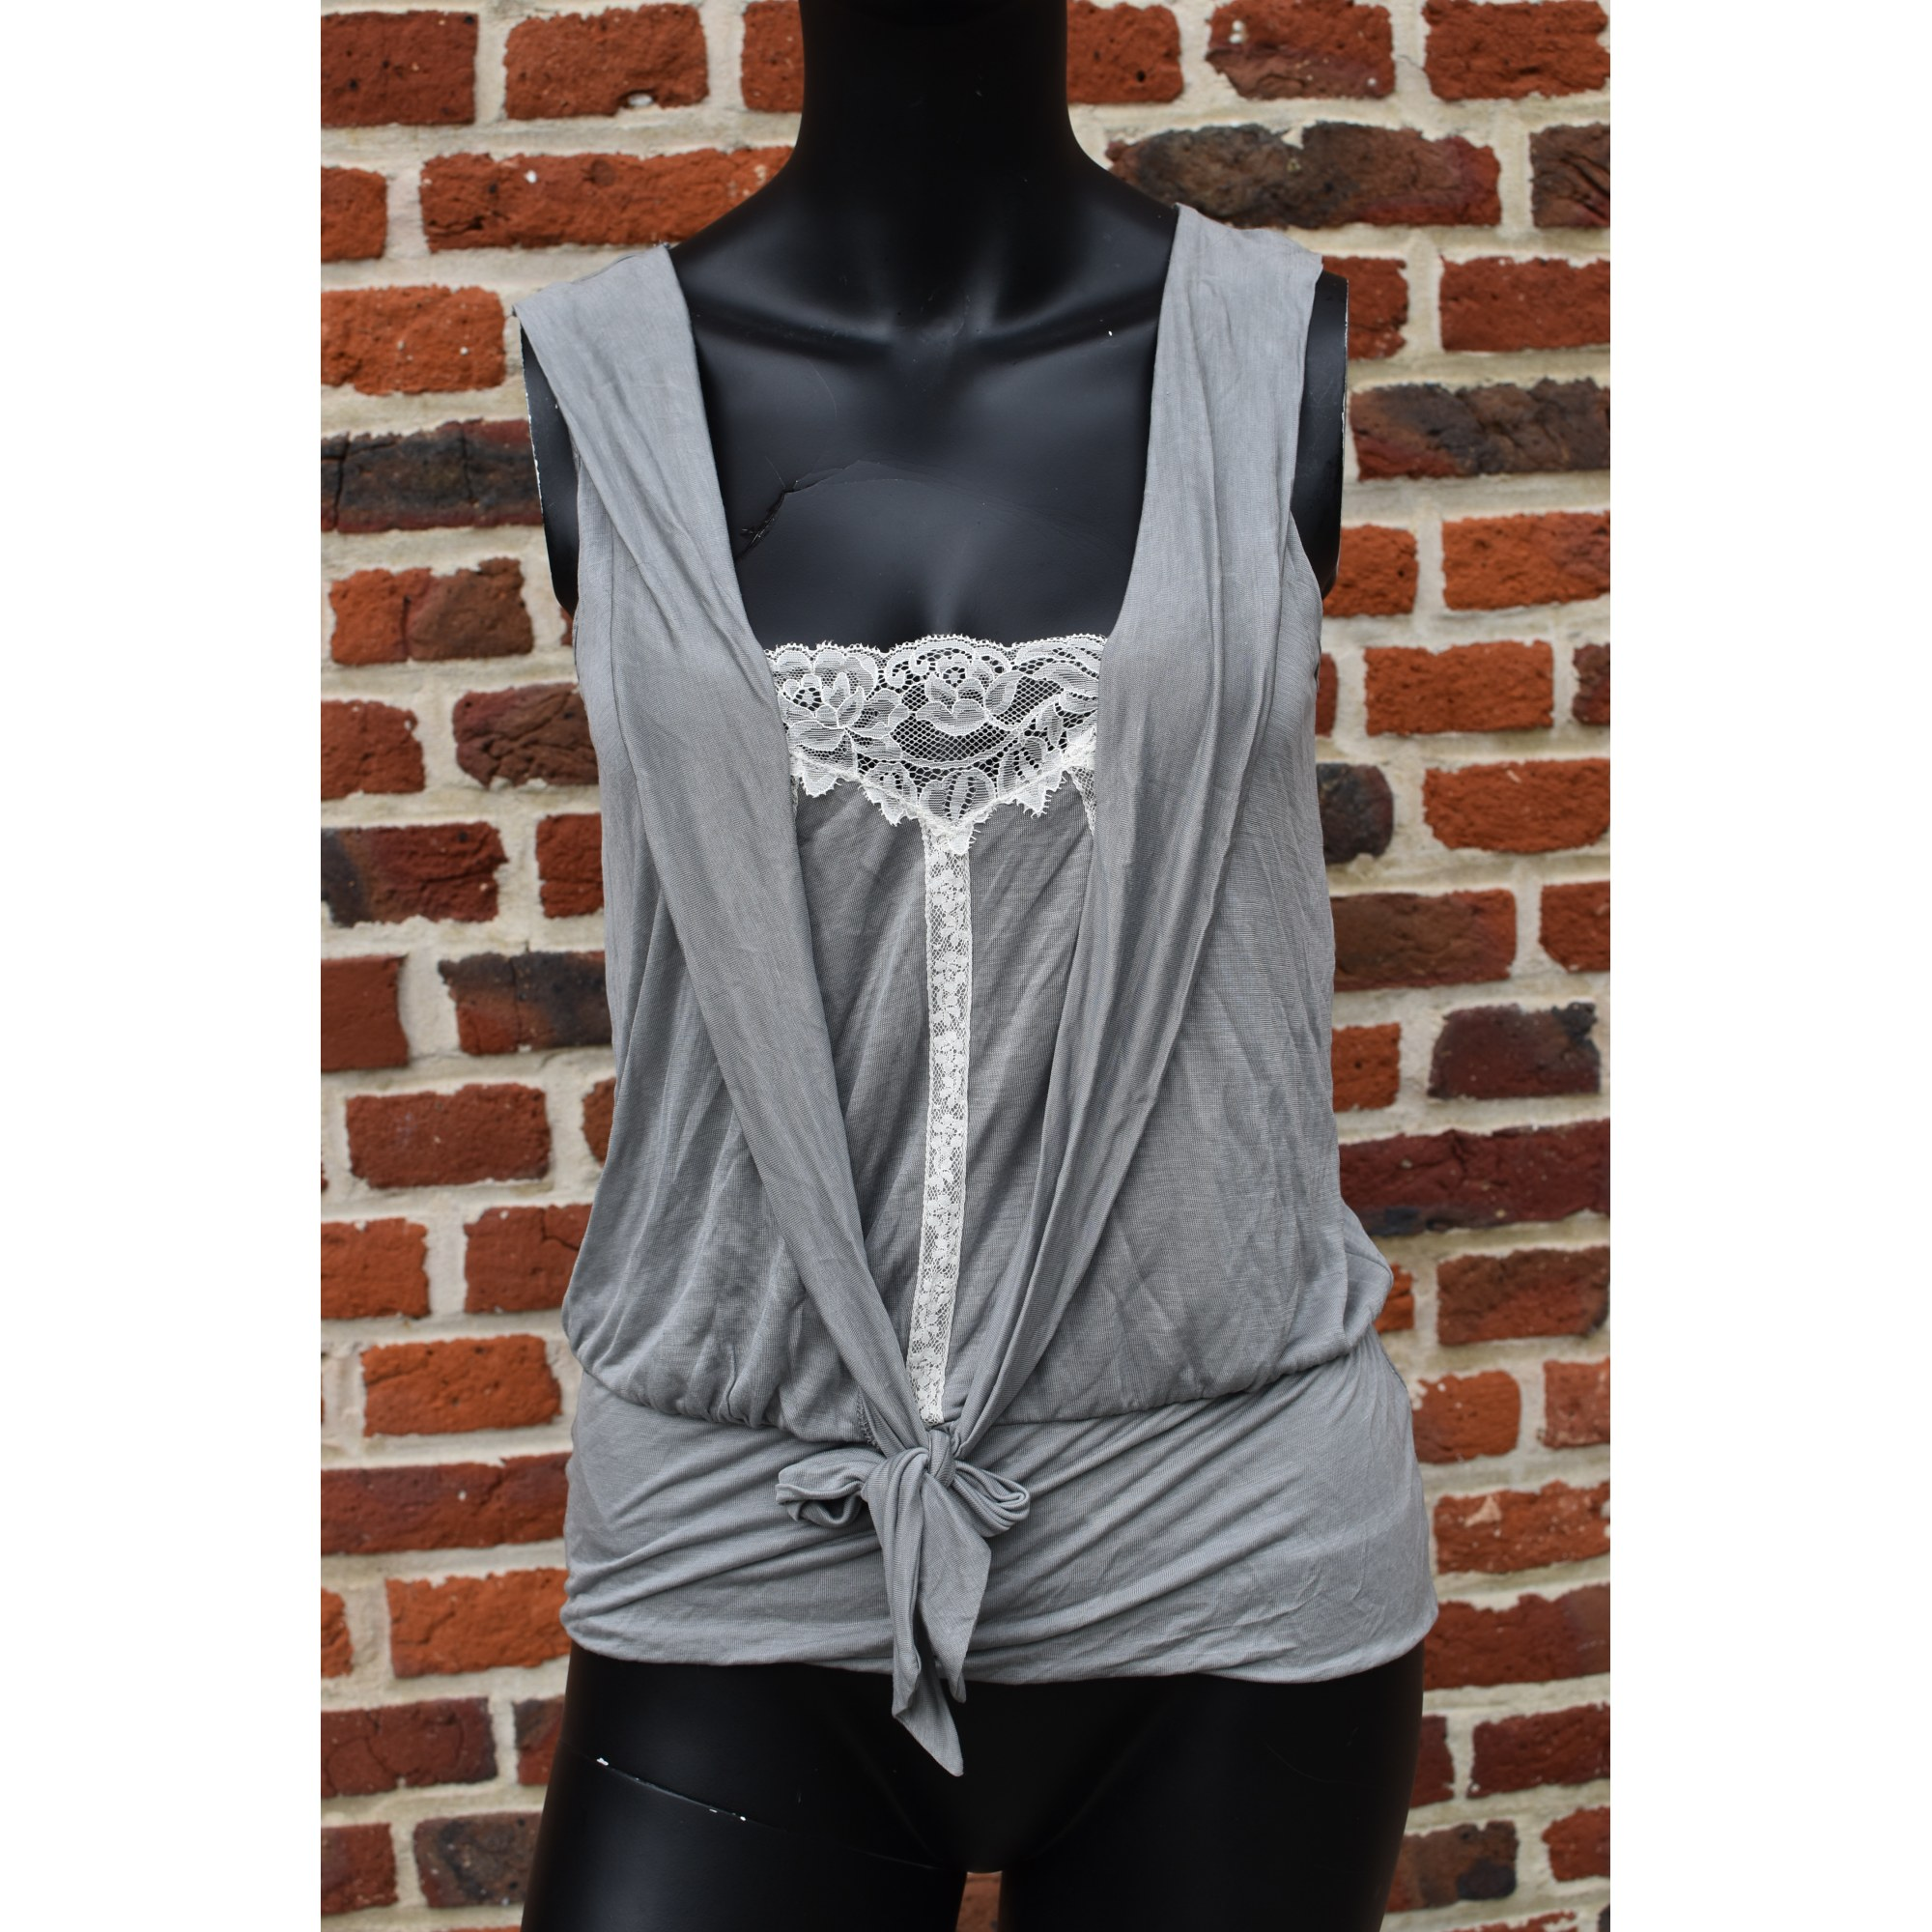 Top, tee-shirt KOOKAI Gris, anthracite